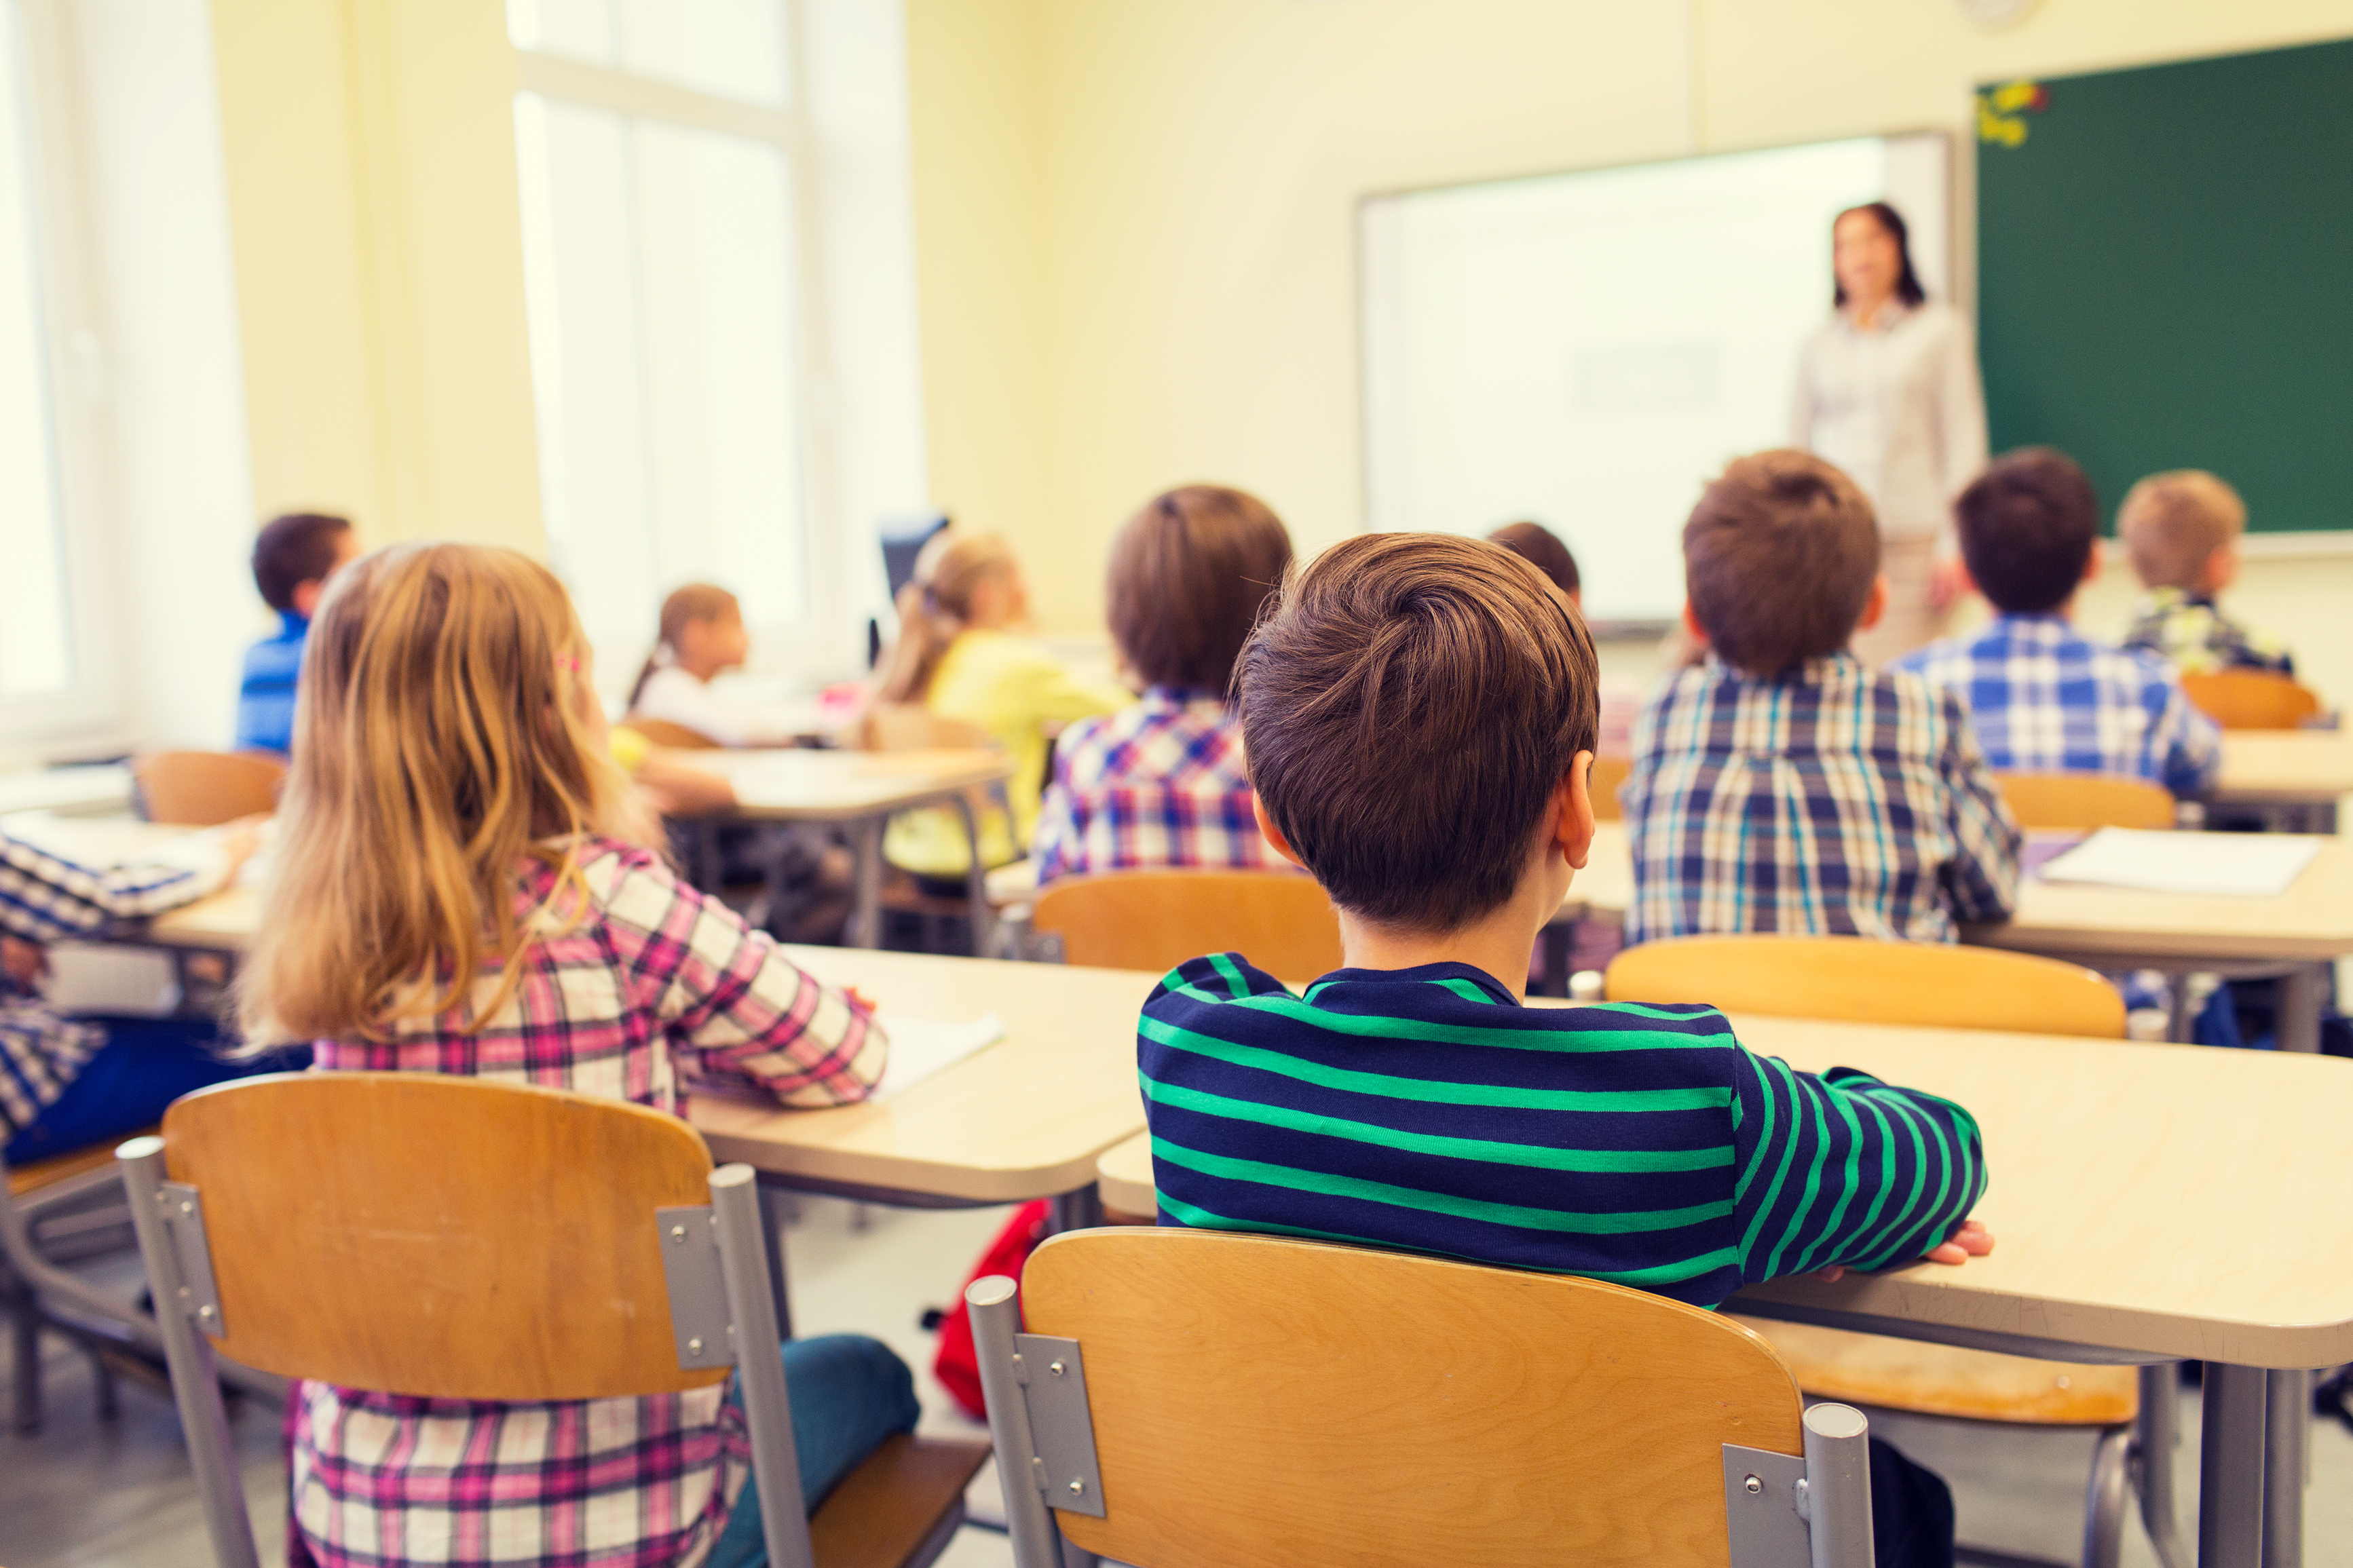 Florida Schools Would Require Daily 'Moment of Silence' Under New Bill